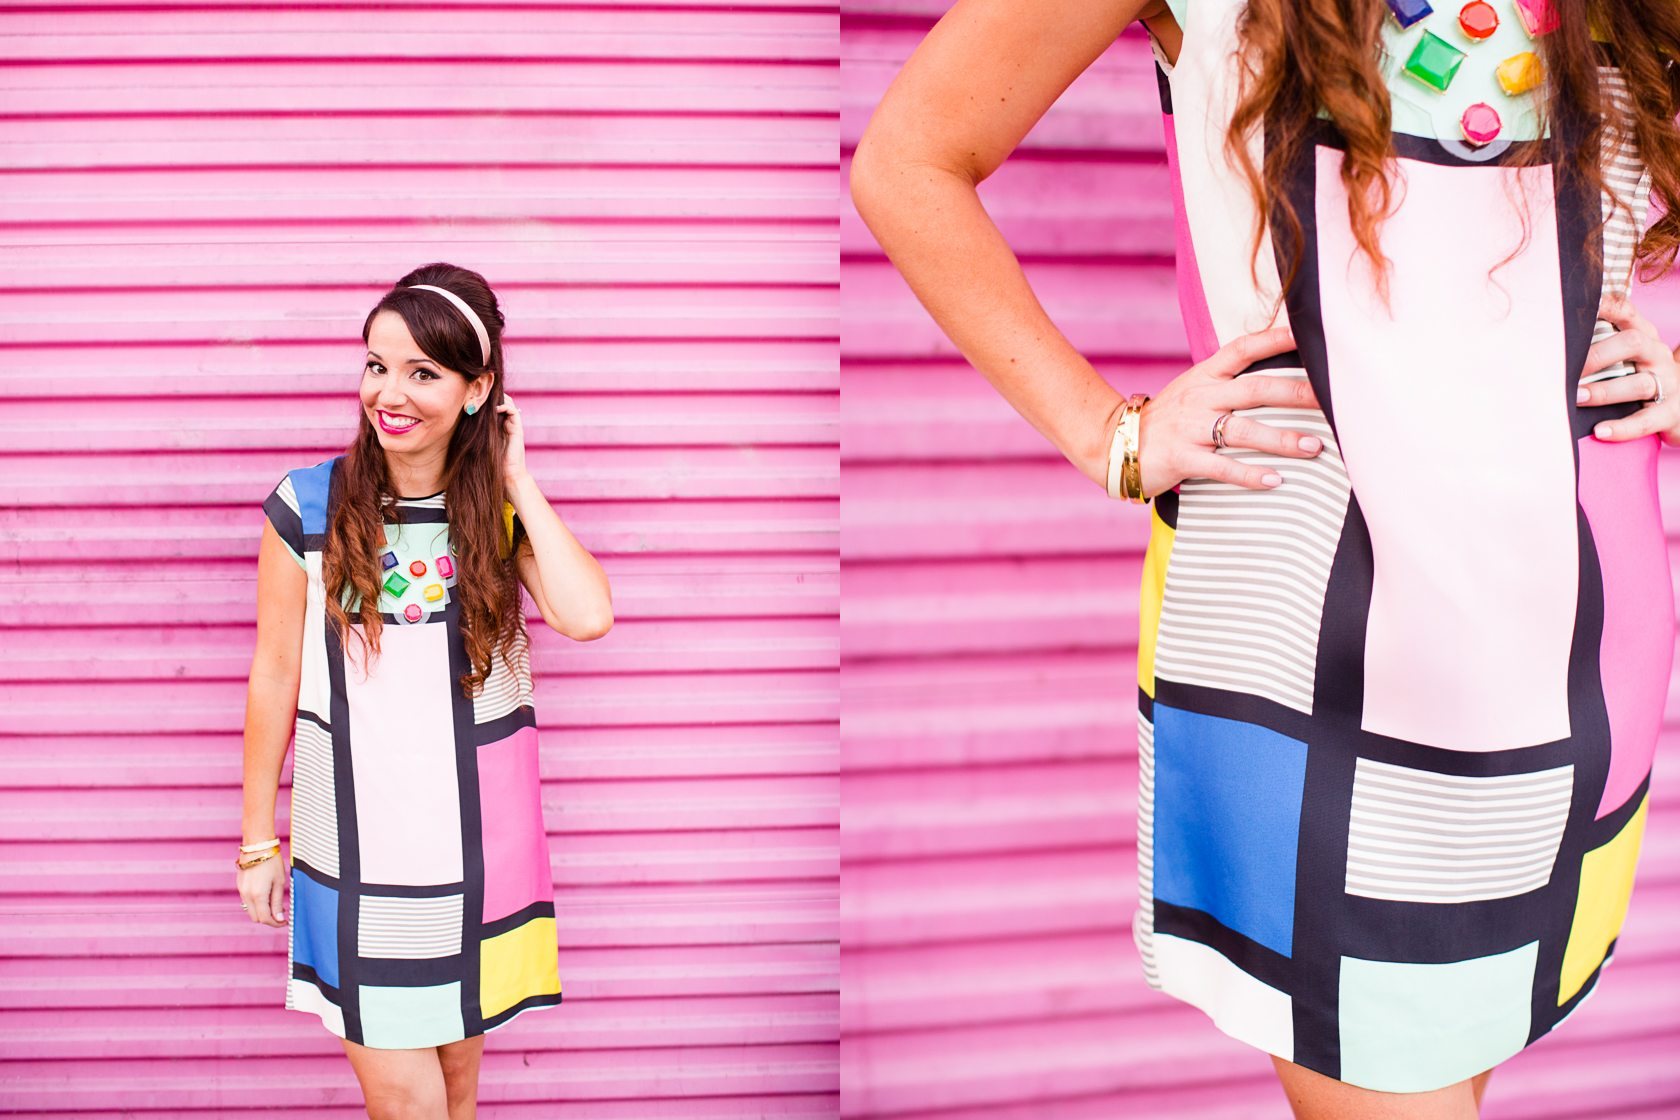 Kate_Spade_Engagement_Session_40.jpg